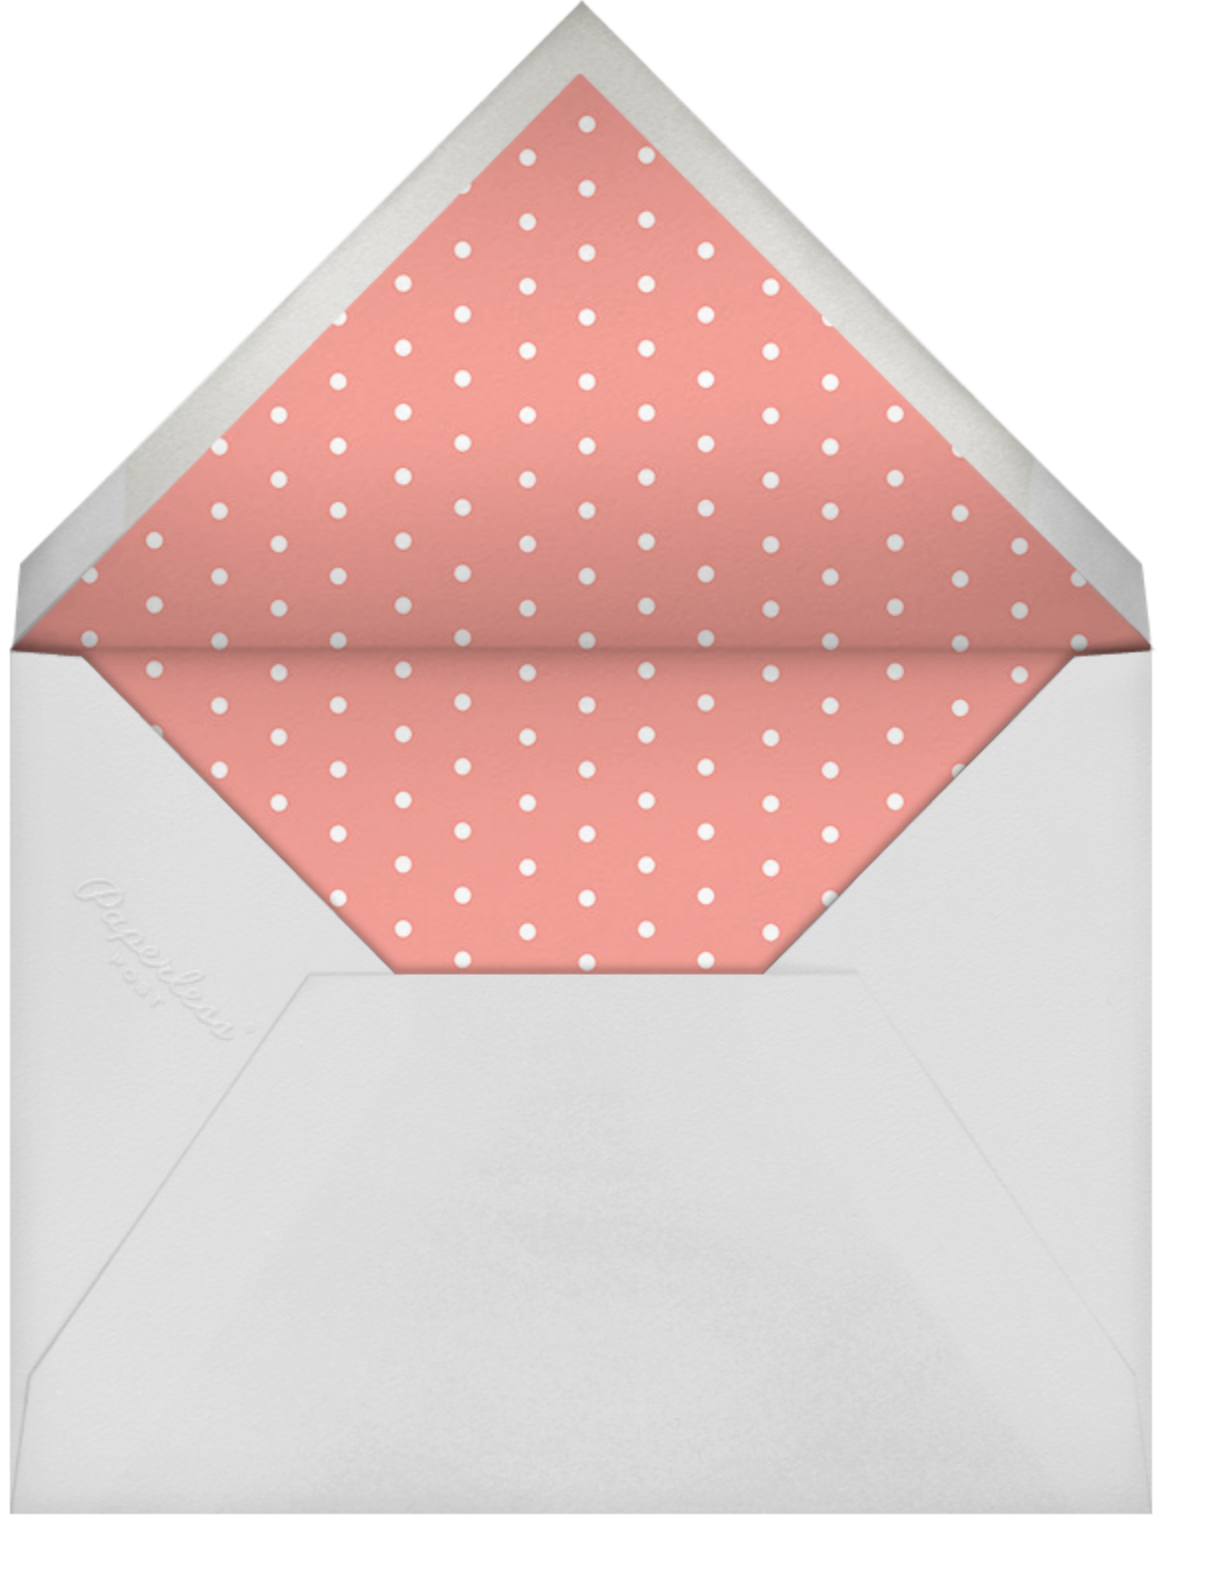 Birthday Scooter - Fair - Rifle Paper Co. - Adult birthday - envelope back